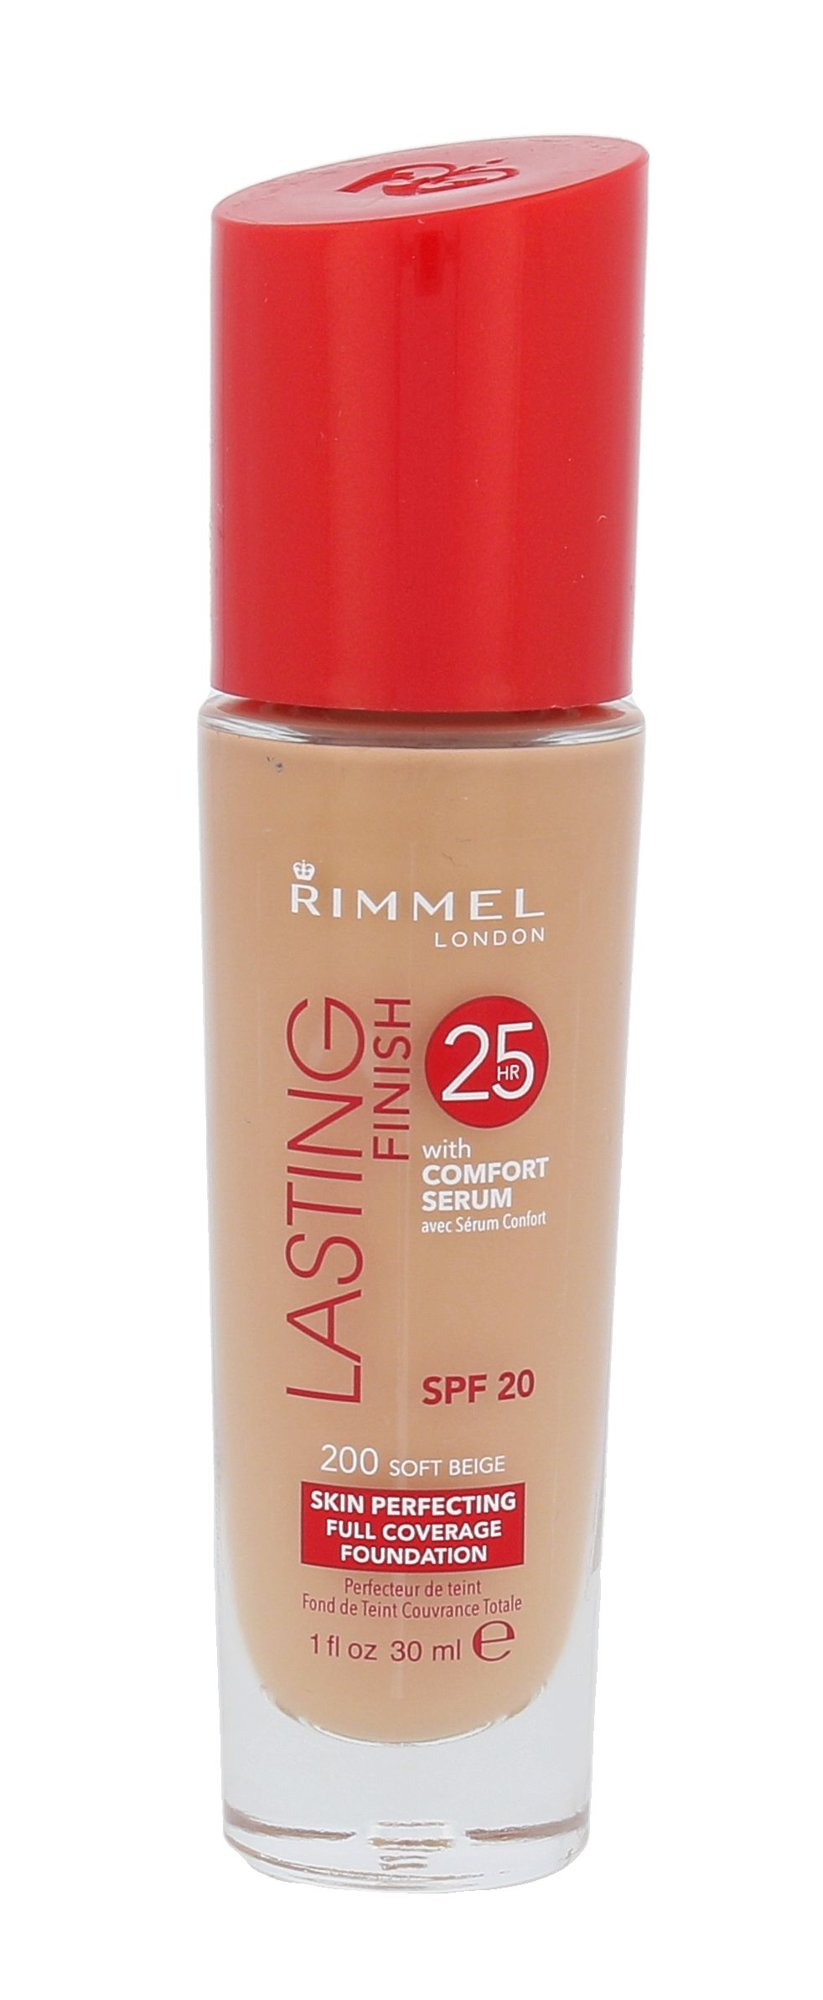 Rimmel London Lasting Finish Cosmetic 30ml 200 Soft Beige